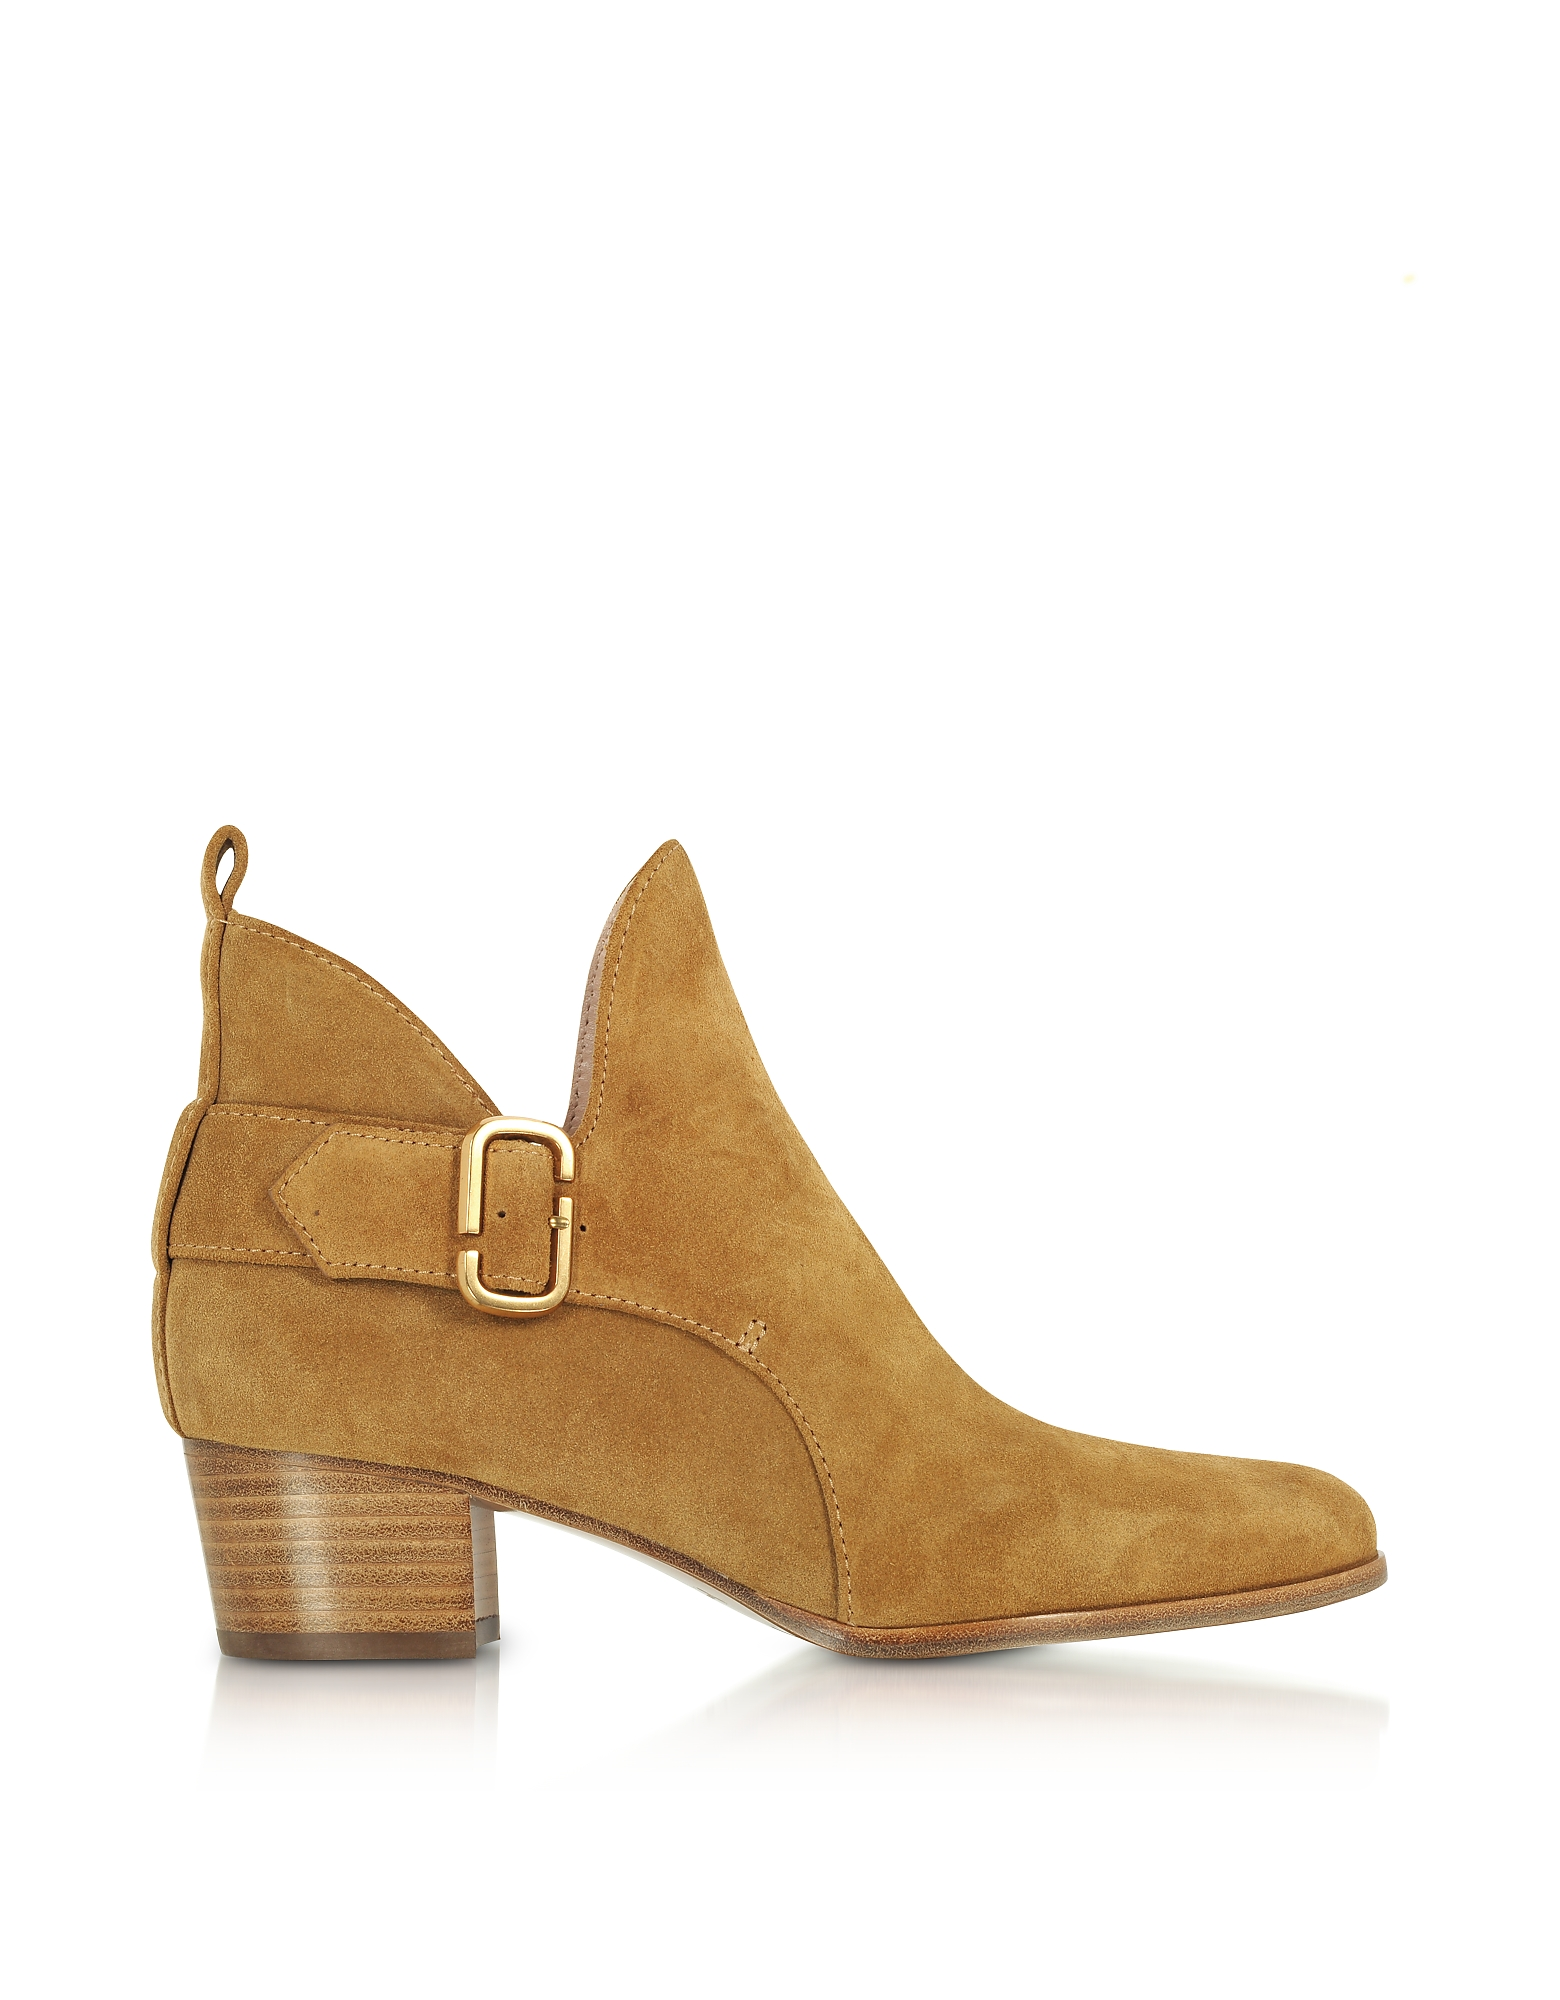 Marc Jacobs Camel Suede Ginger Interlock Ankle Boots